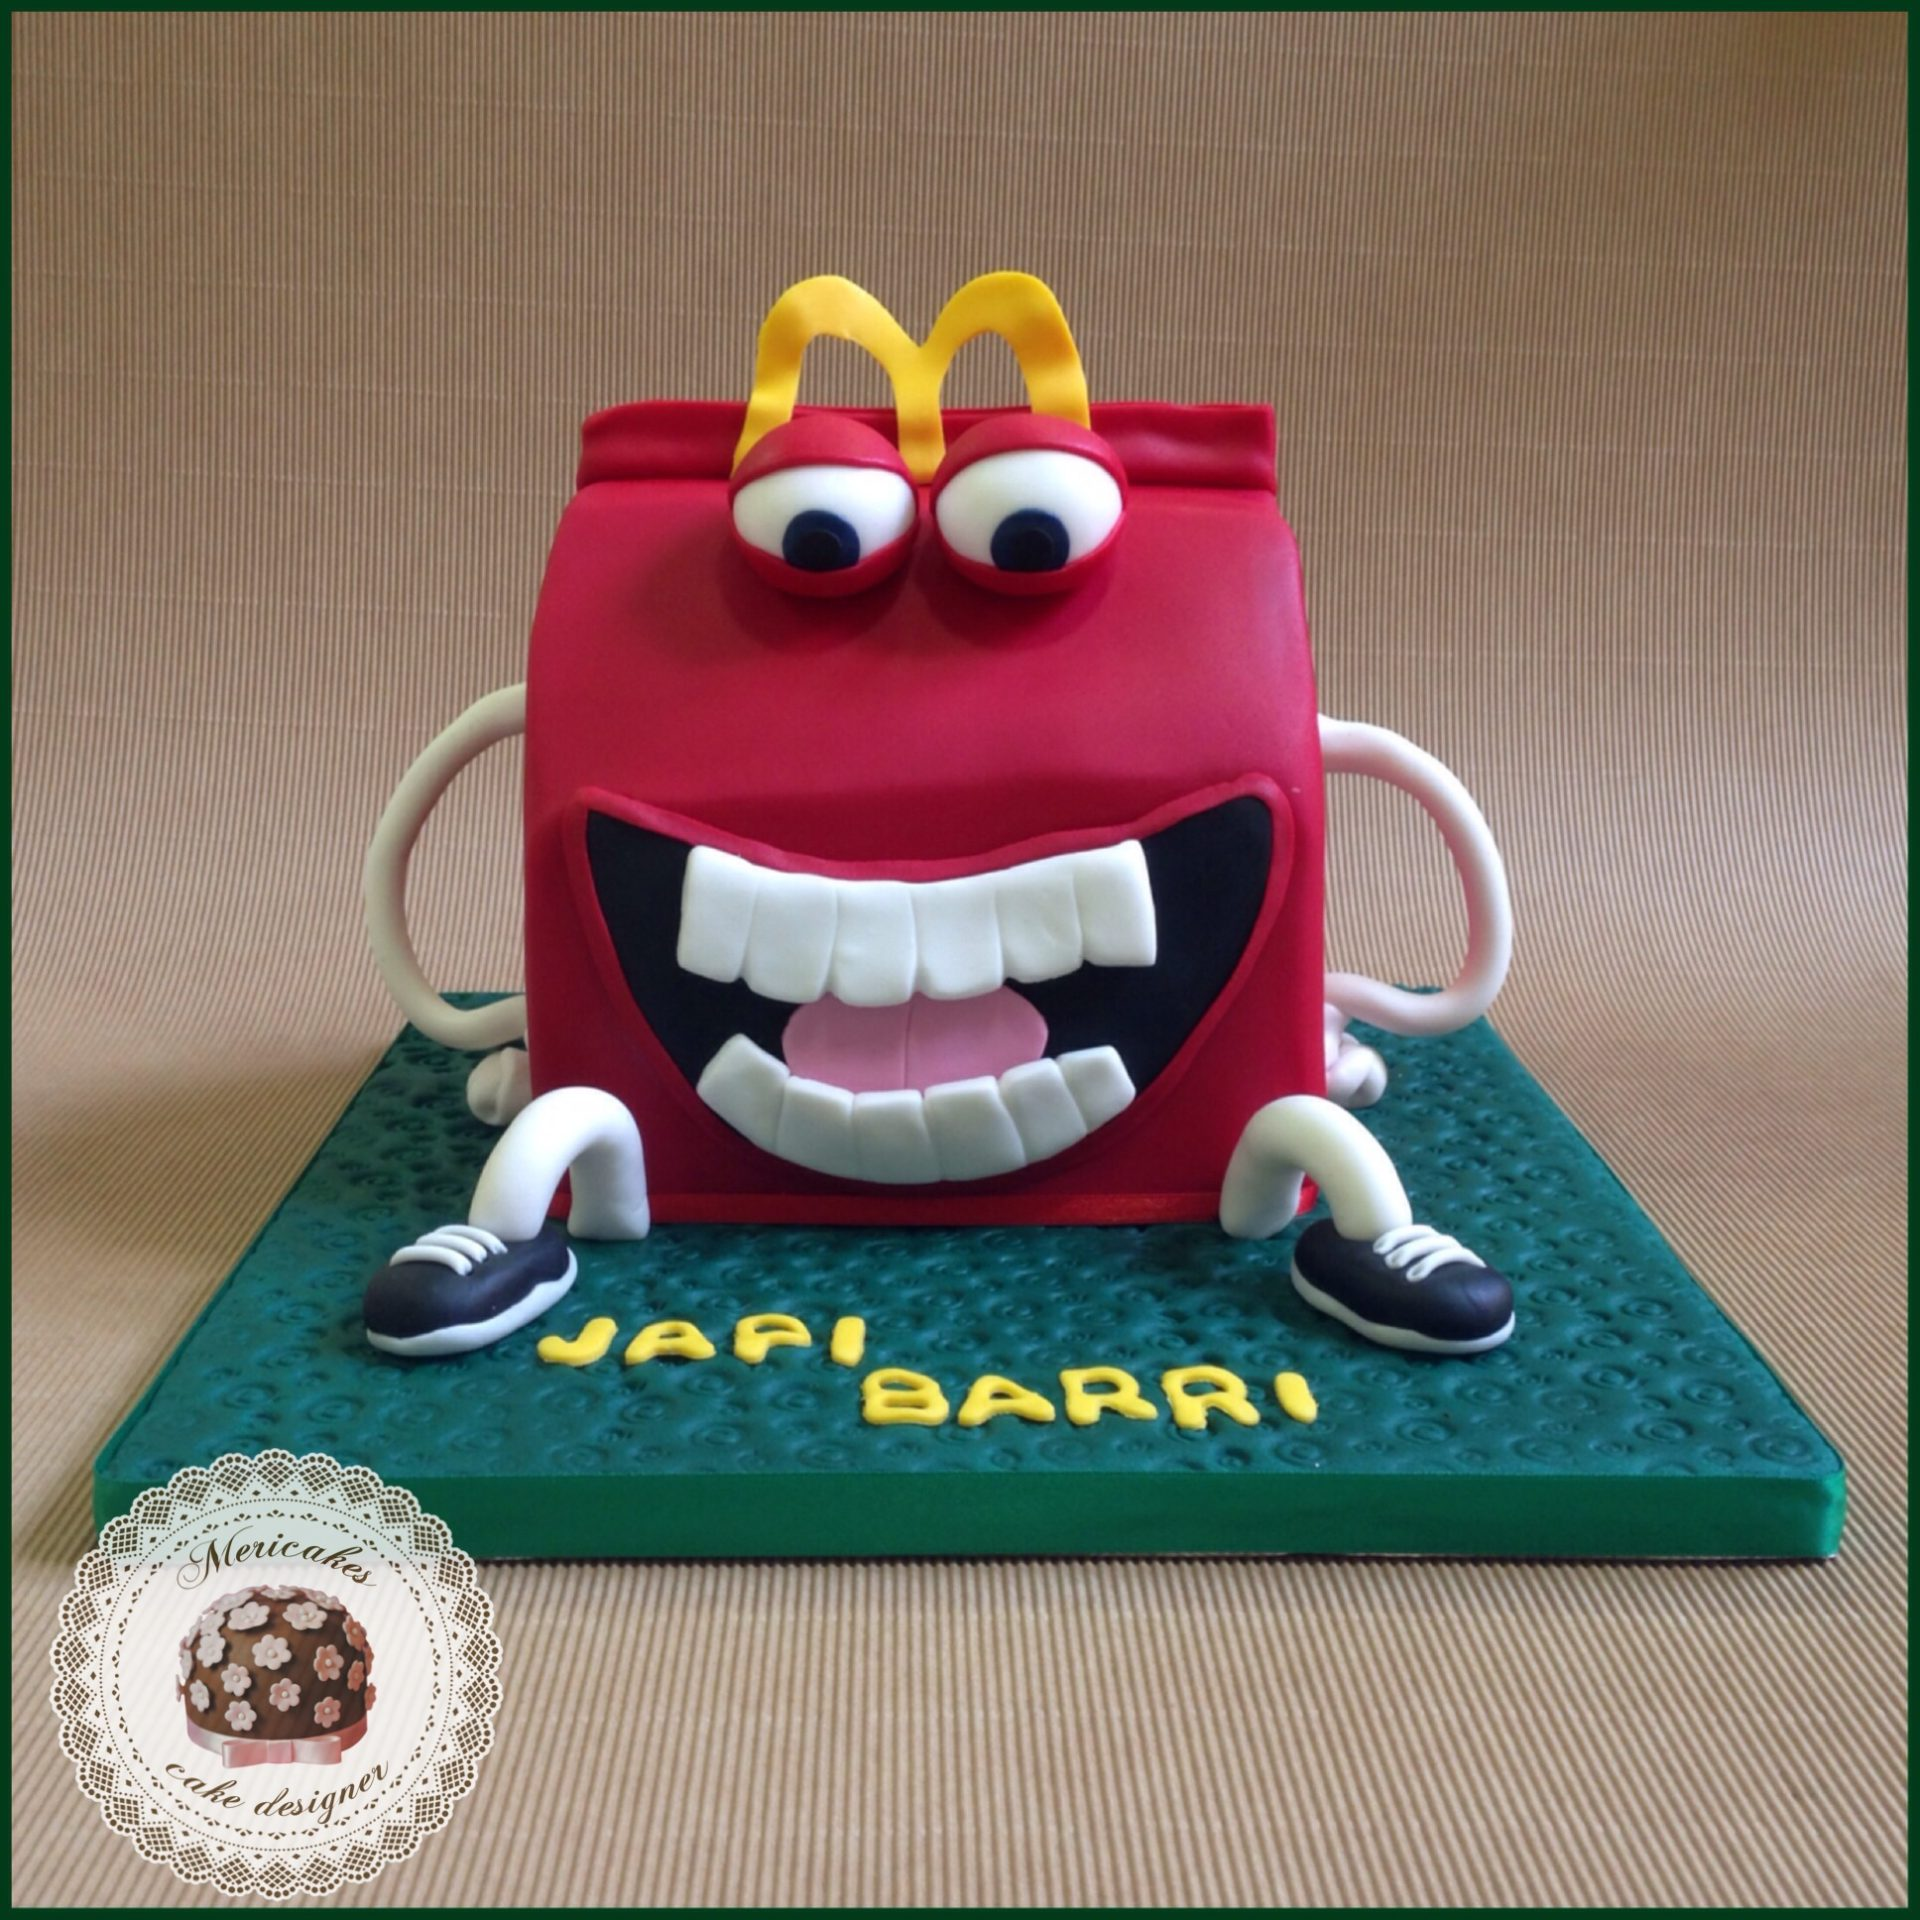 happy-meal-mc-donals-mericakes-tarta-cake-birthday-cake-geek-cake-sugarcraft-pastel-red-velvet-barcelona-reposteria-creativa-jp